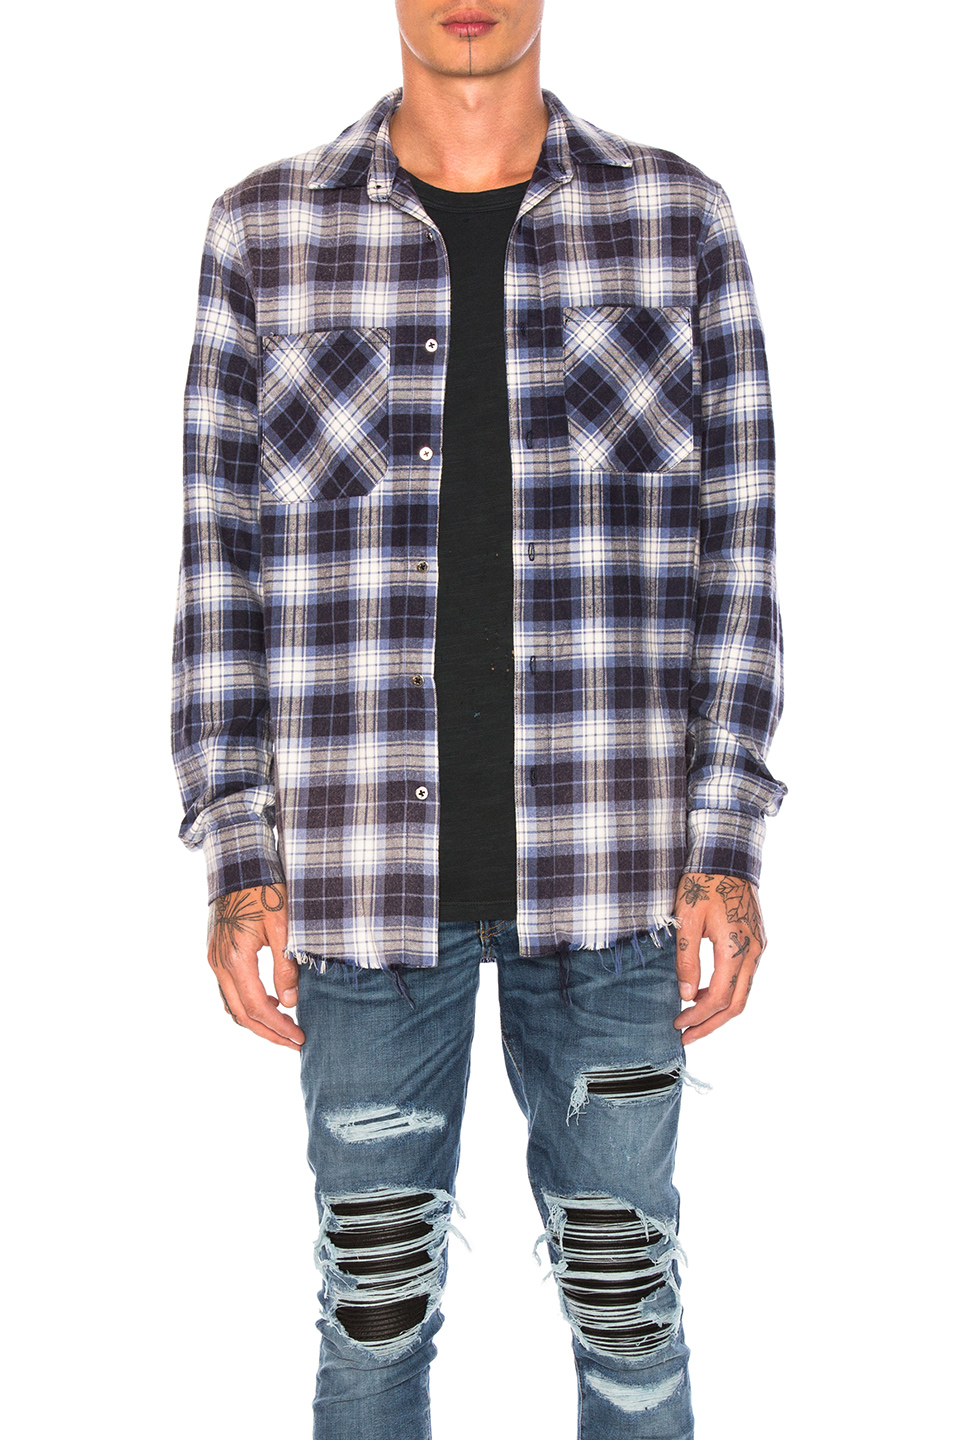 Amiri Grunge Flannel in Blue,Checkered & Plaid